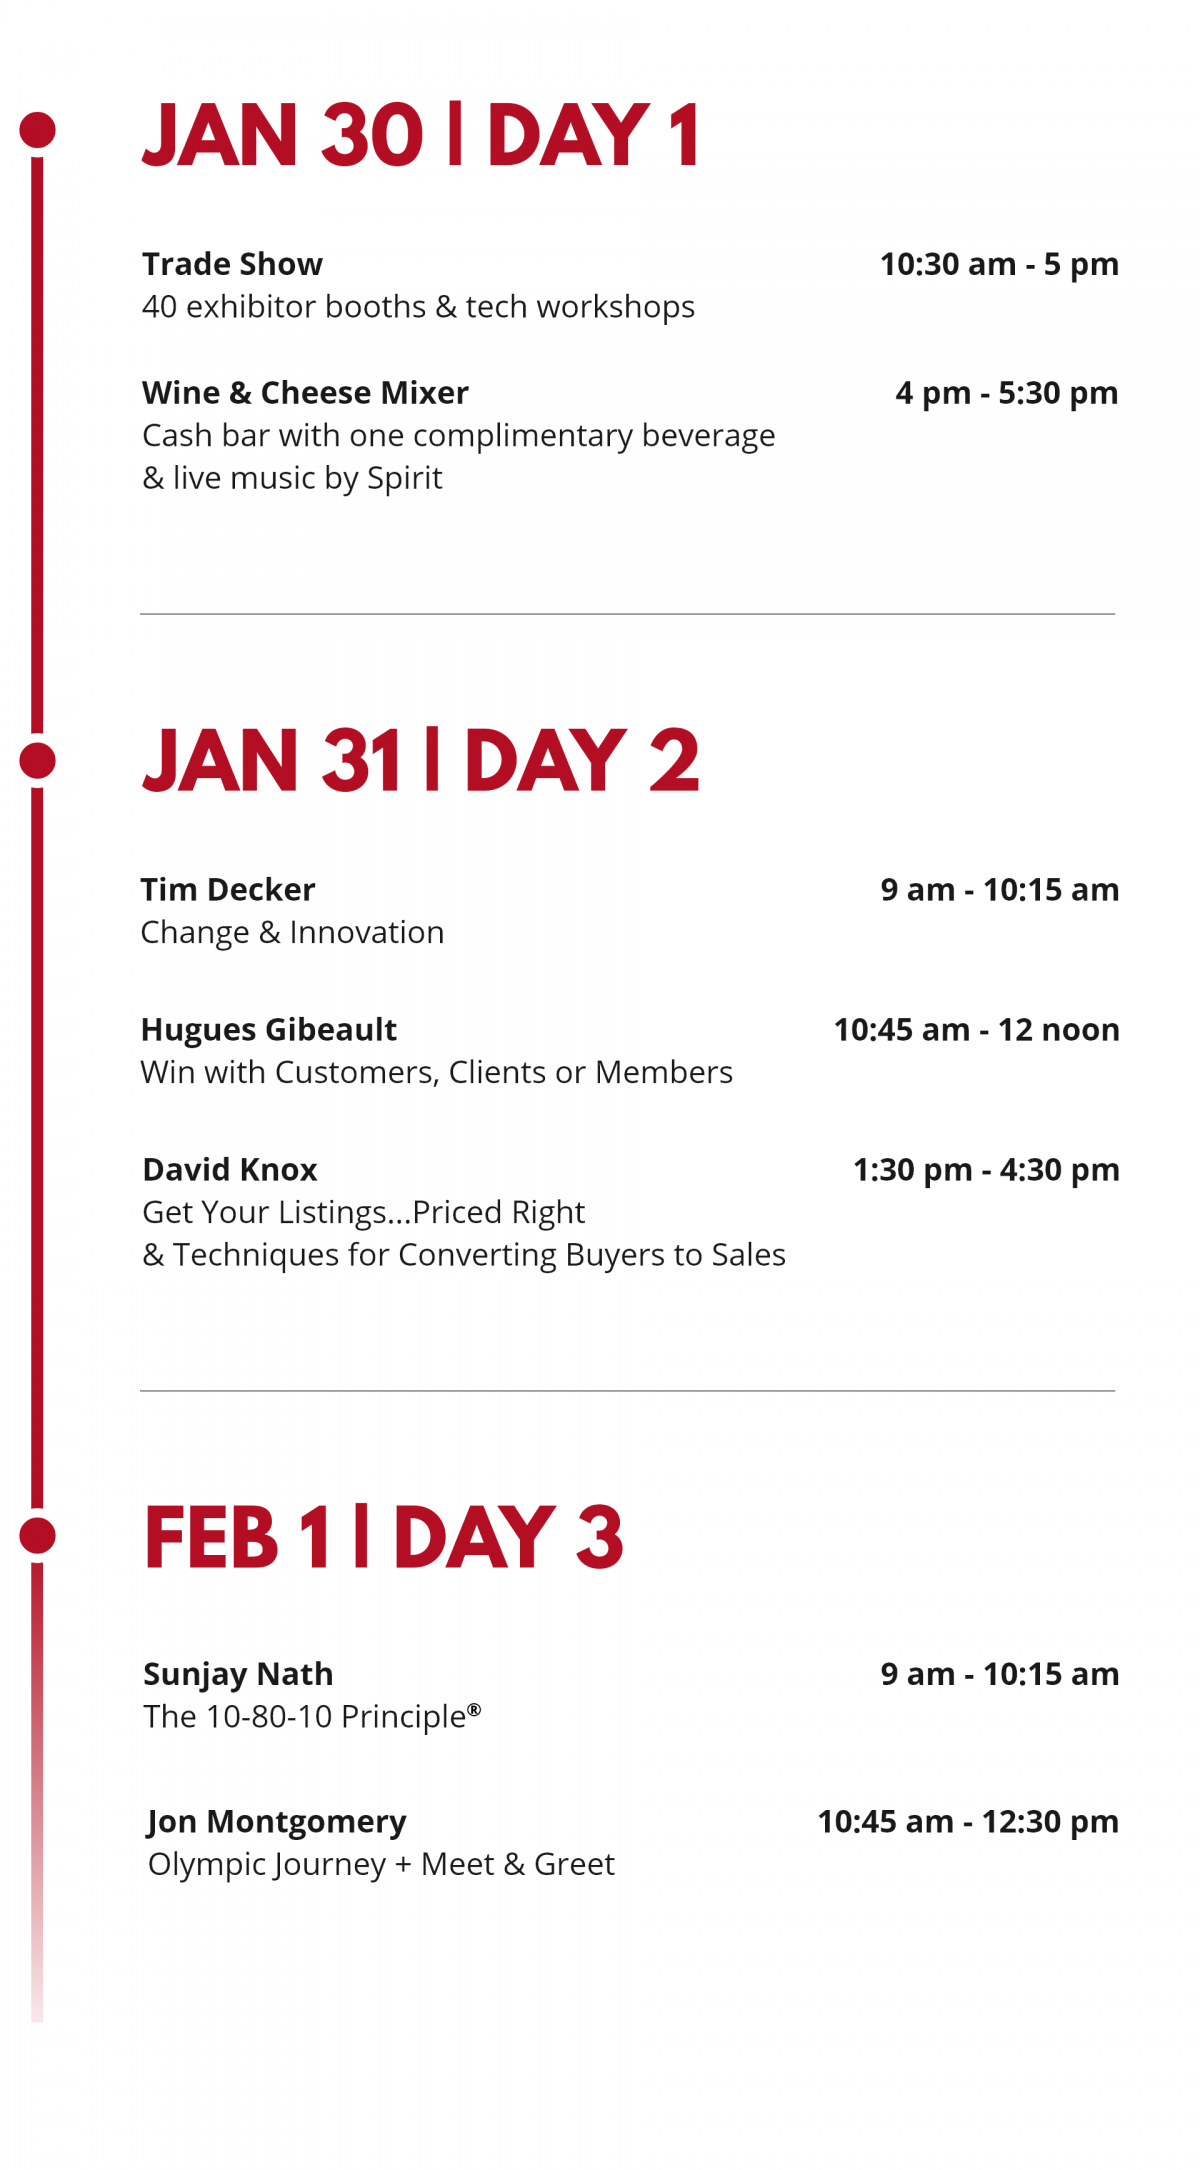 Trade Show Program - Day 1 is 10:30 am to 5:30 pm - Day 2 is 9 am to 4:30 pm - Day 3 is 9:00 am to 12:30 pm